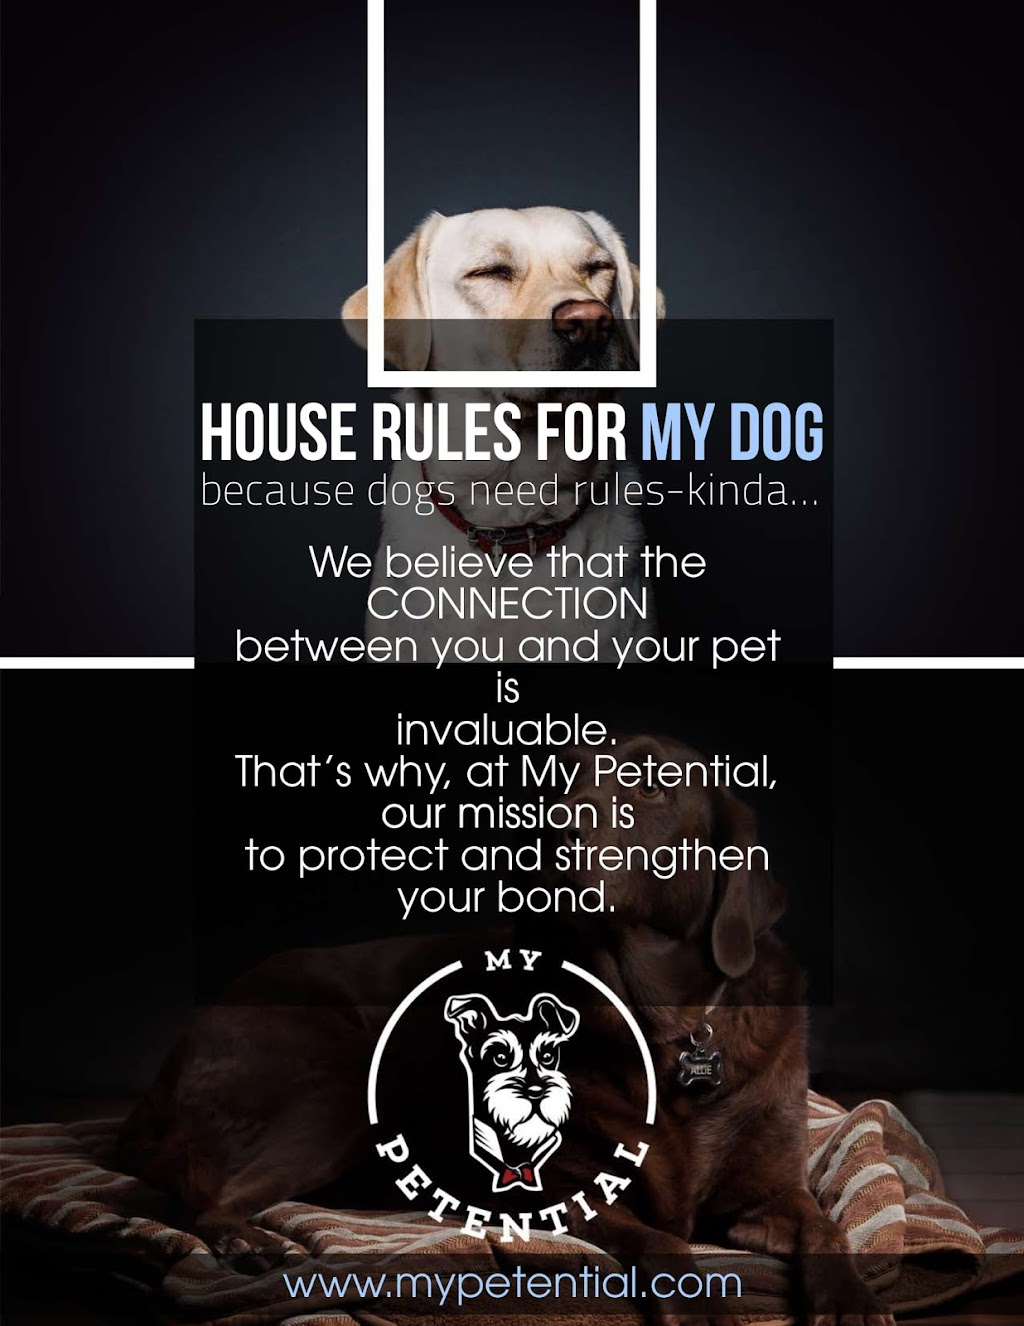 House Rules for My Dog E-book